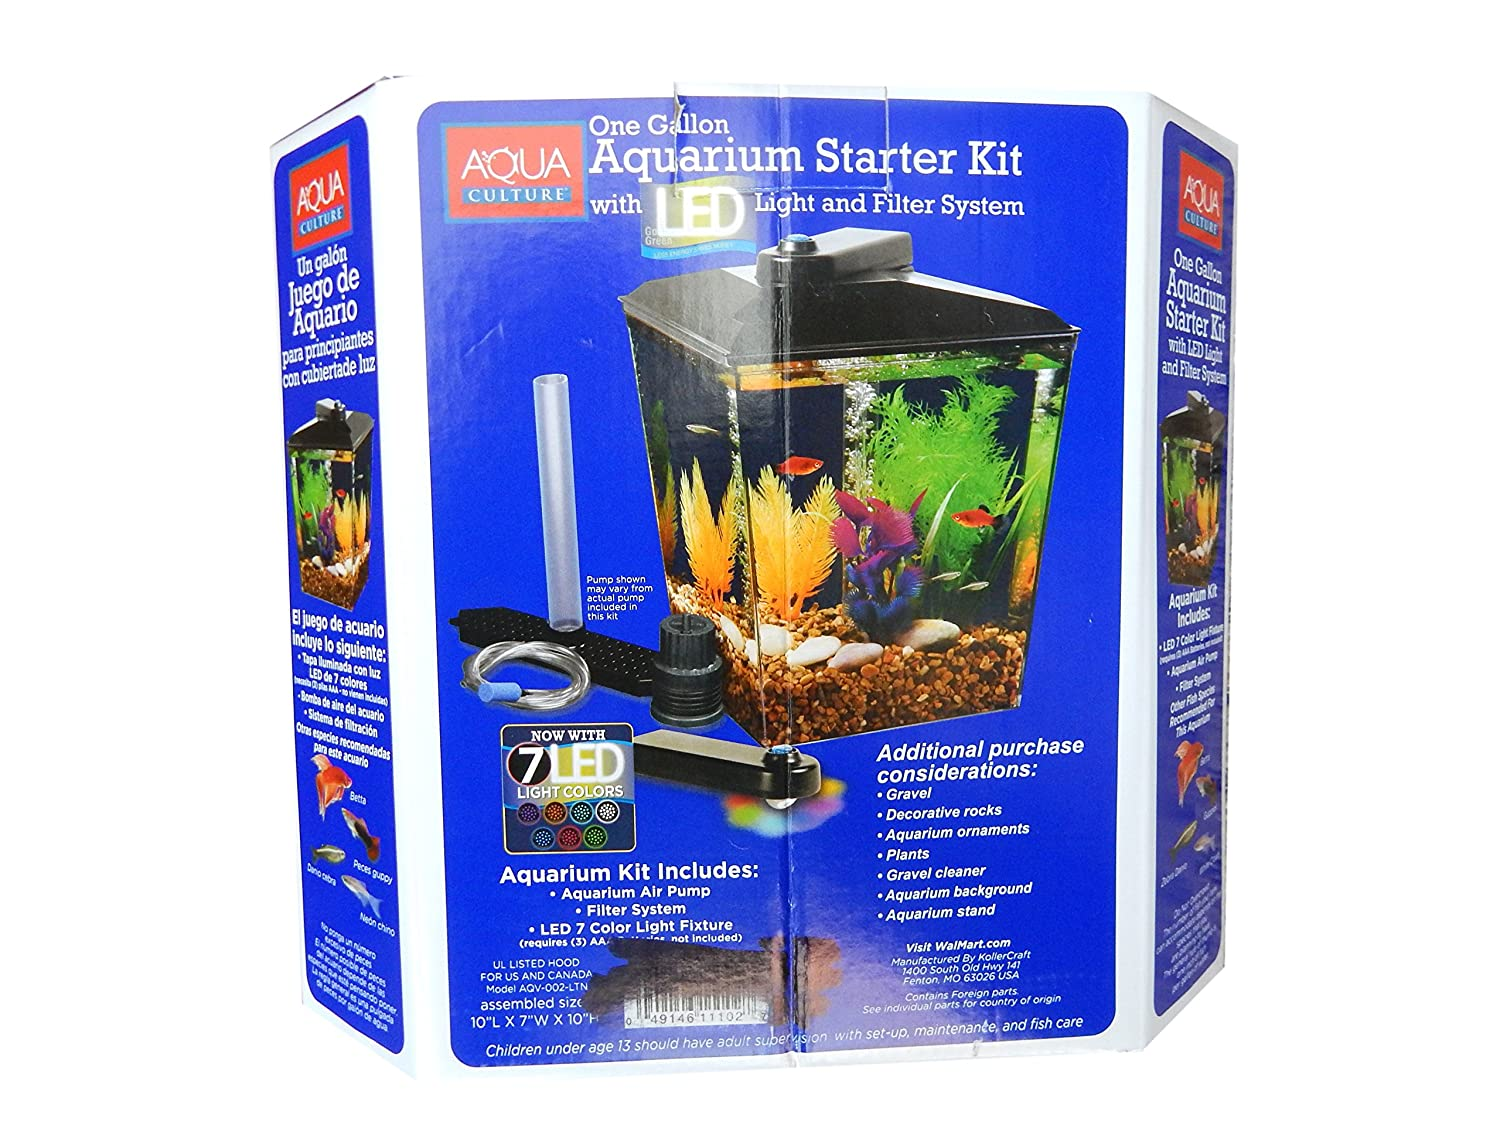 Amazon.com : Aqua Culture One Gallon Aquarium Starter Kit with LED Light & Filter System : Pet Supplies